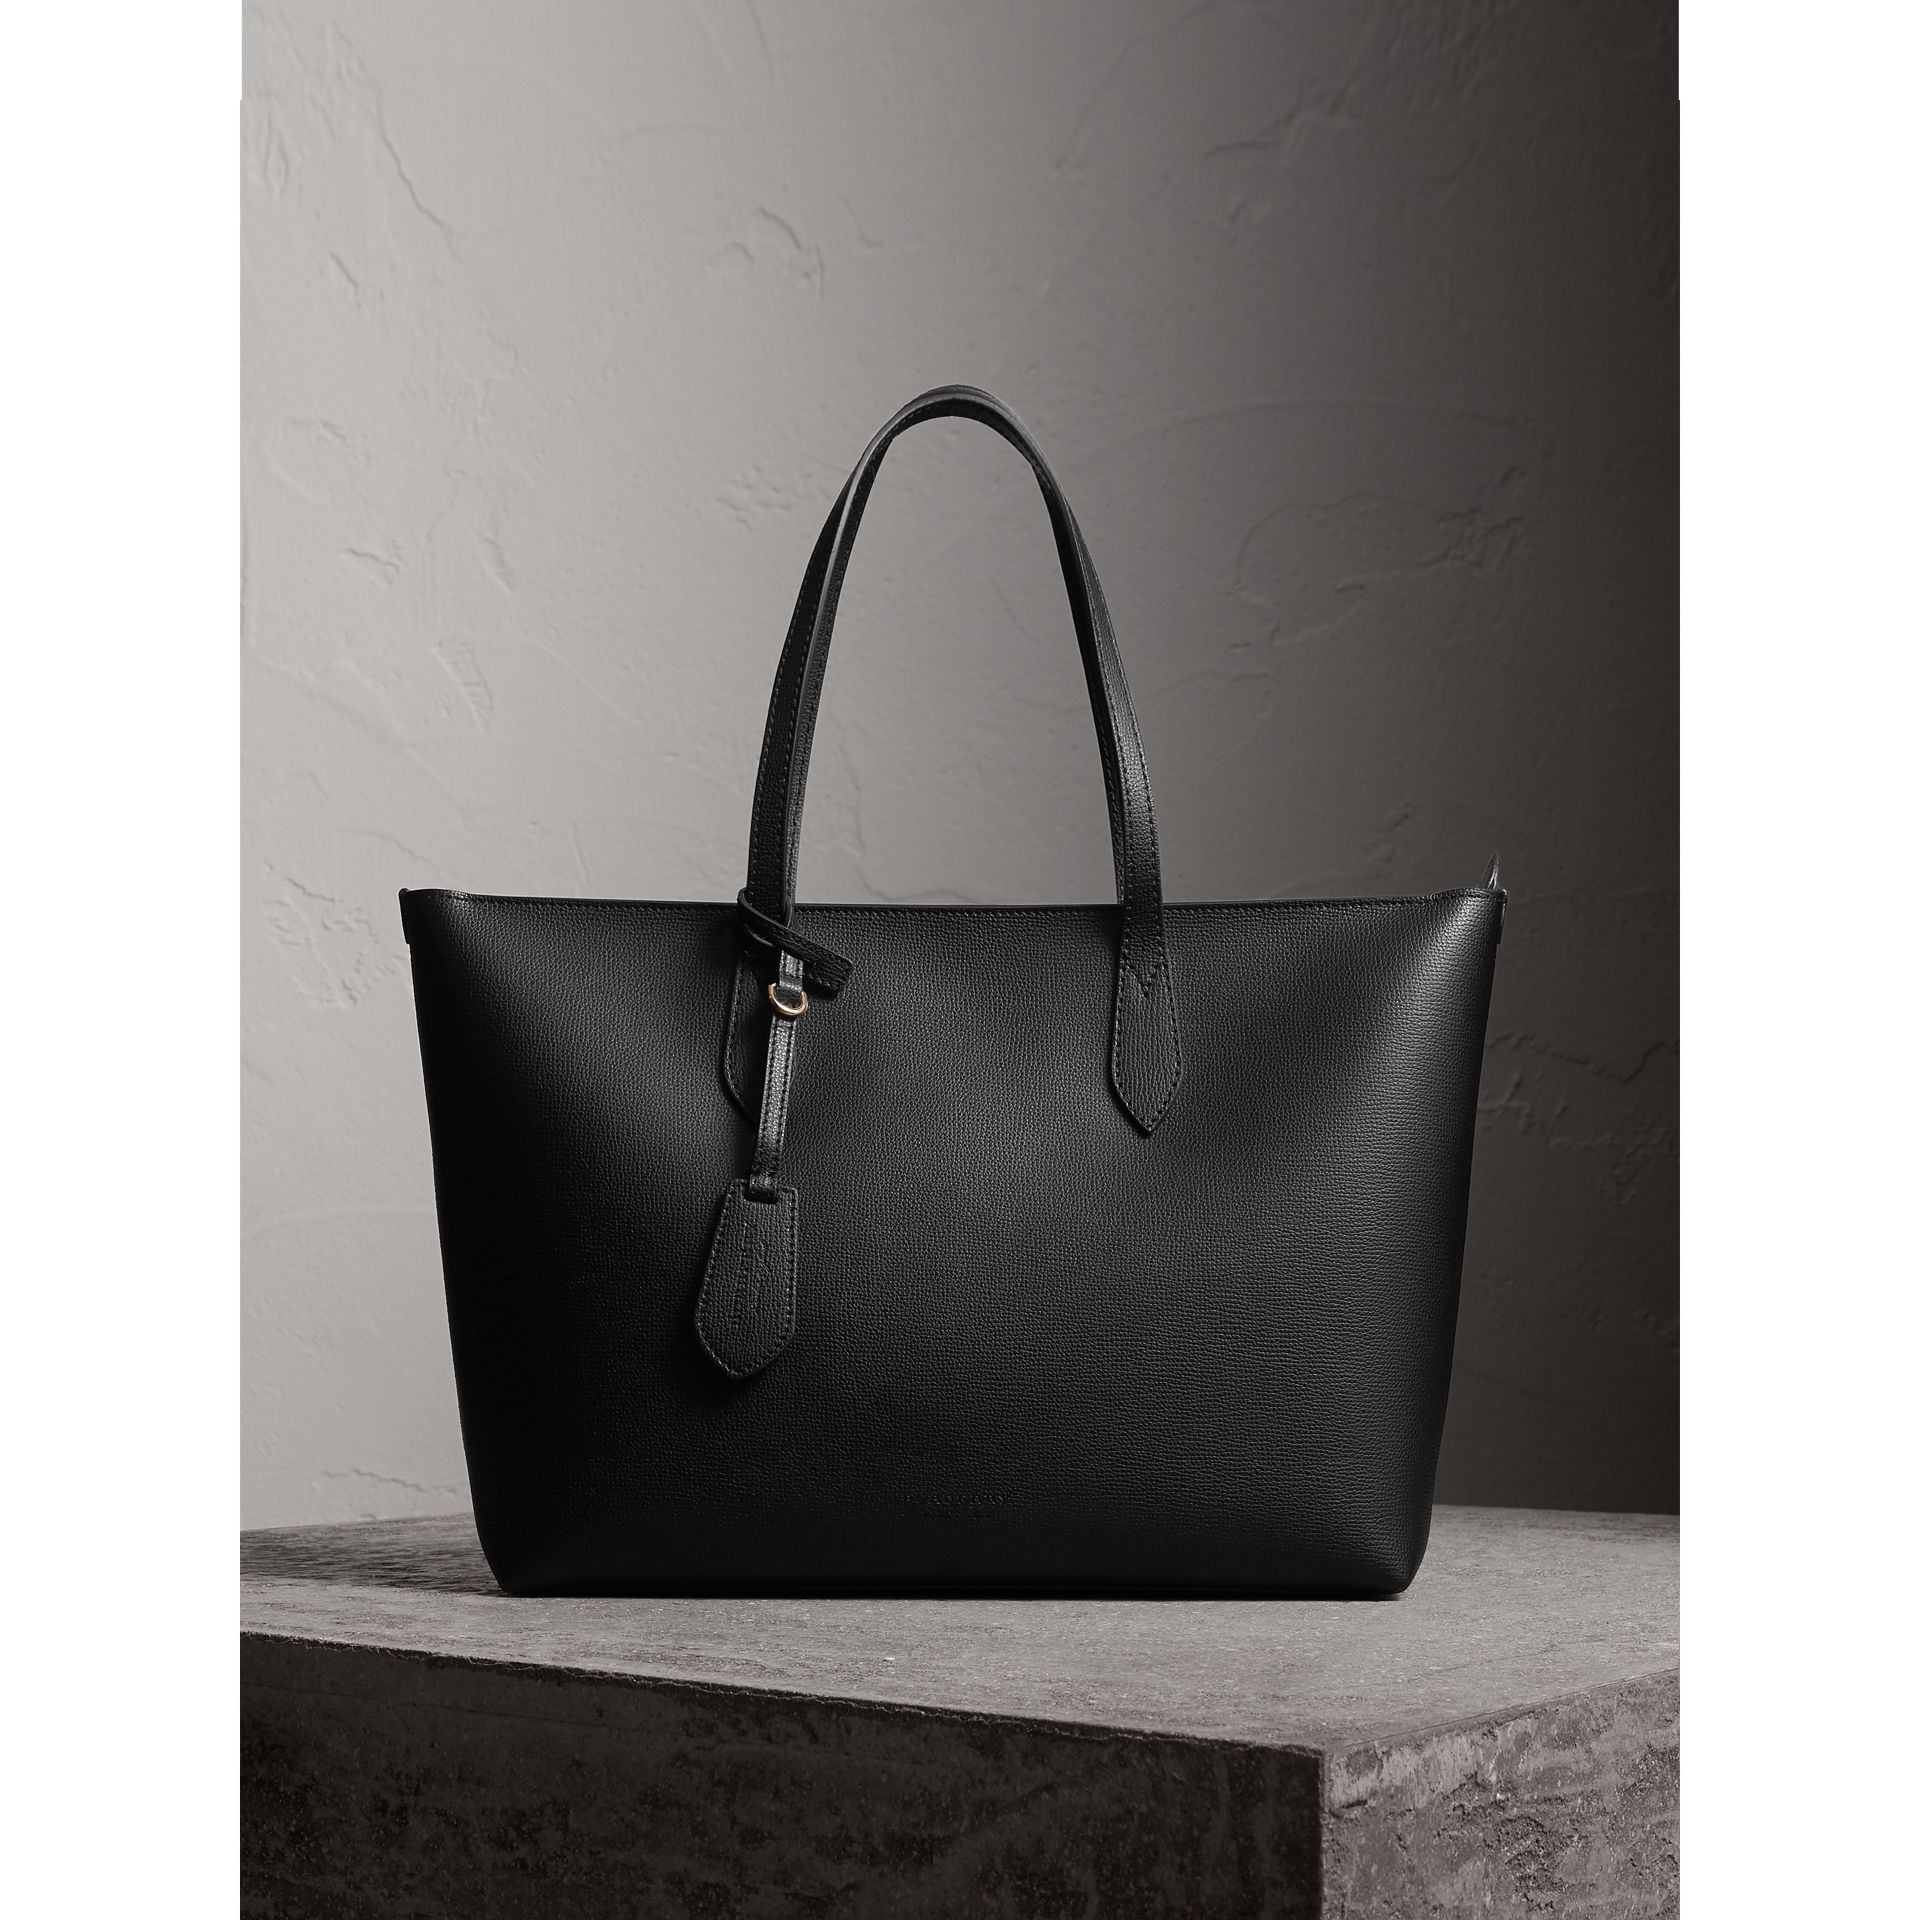 Medium Coated Leather Tote in Black - Women | Burberry United Kingdom - gallery image 1